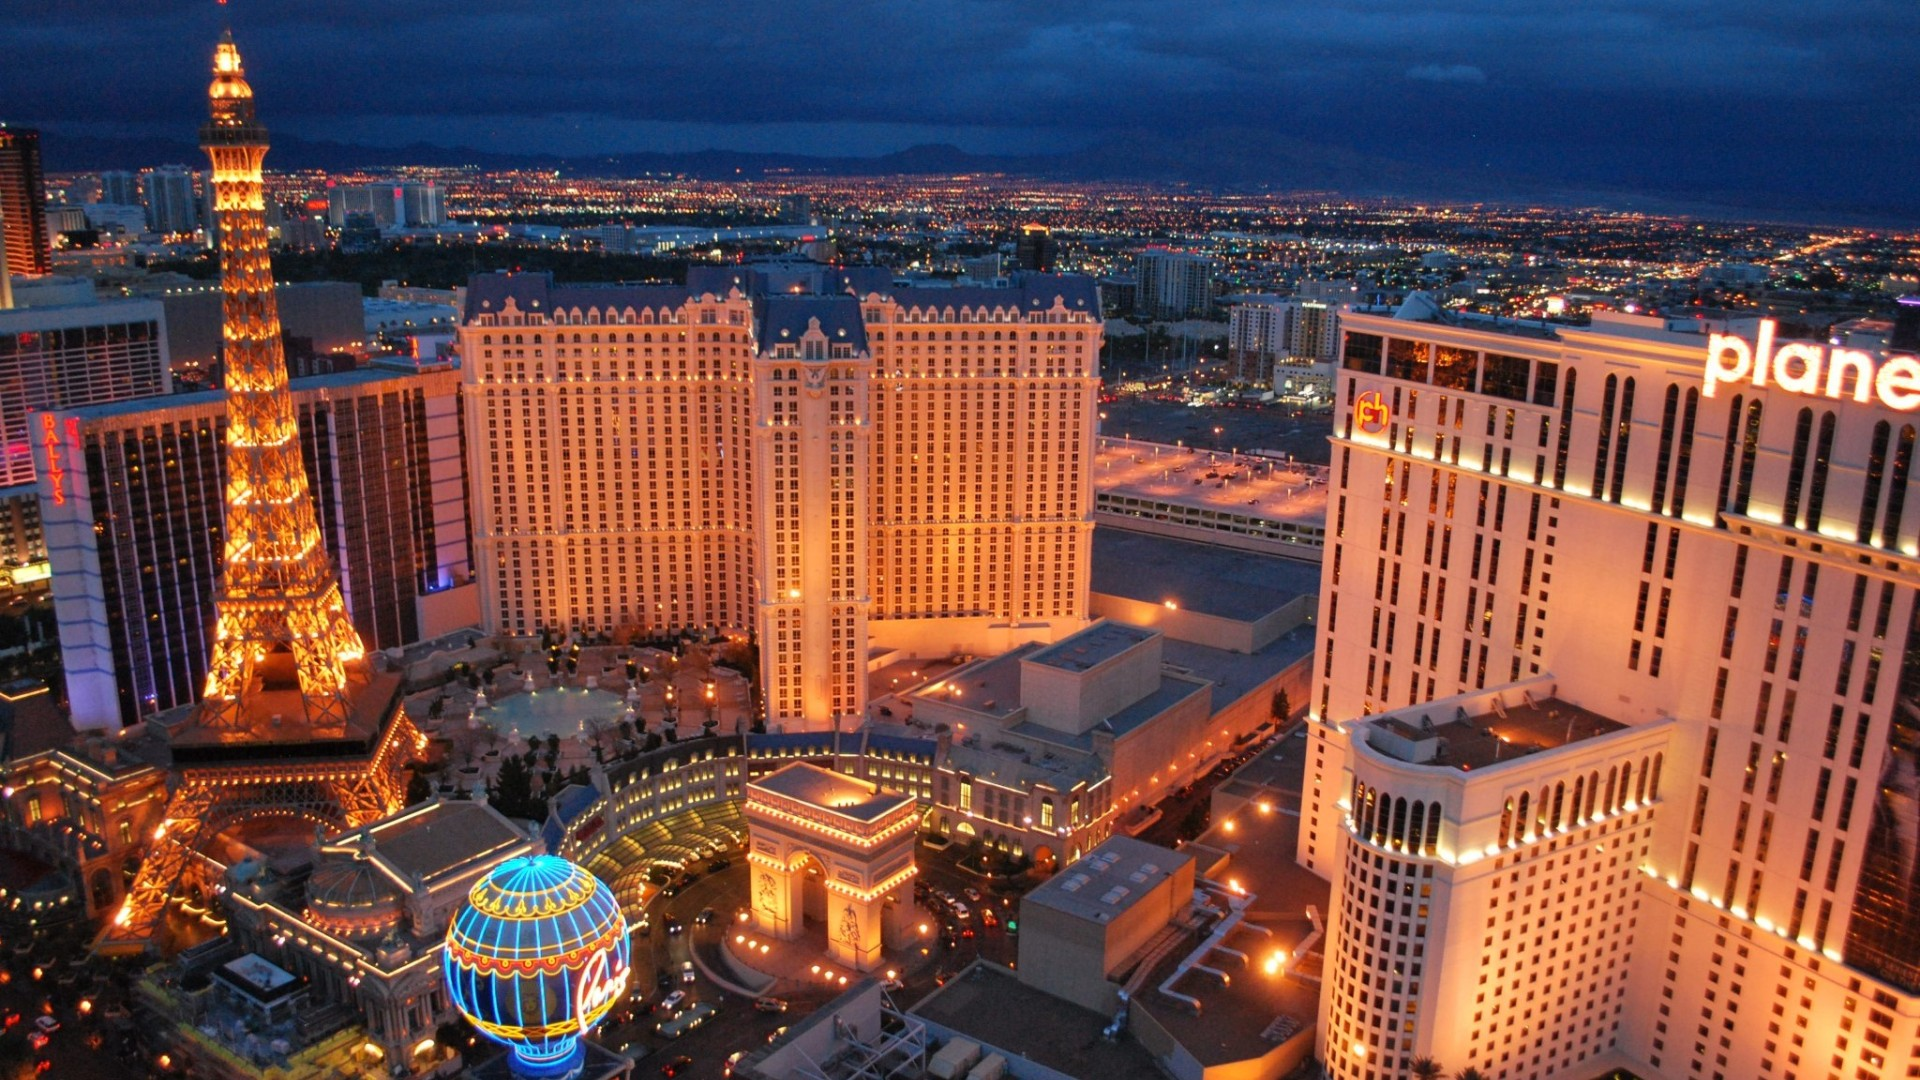 Las-Vegas-Widescreen-hd-Wallpaper